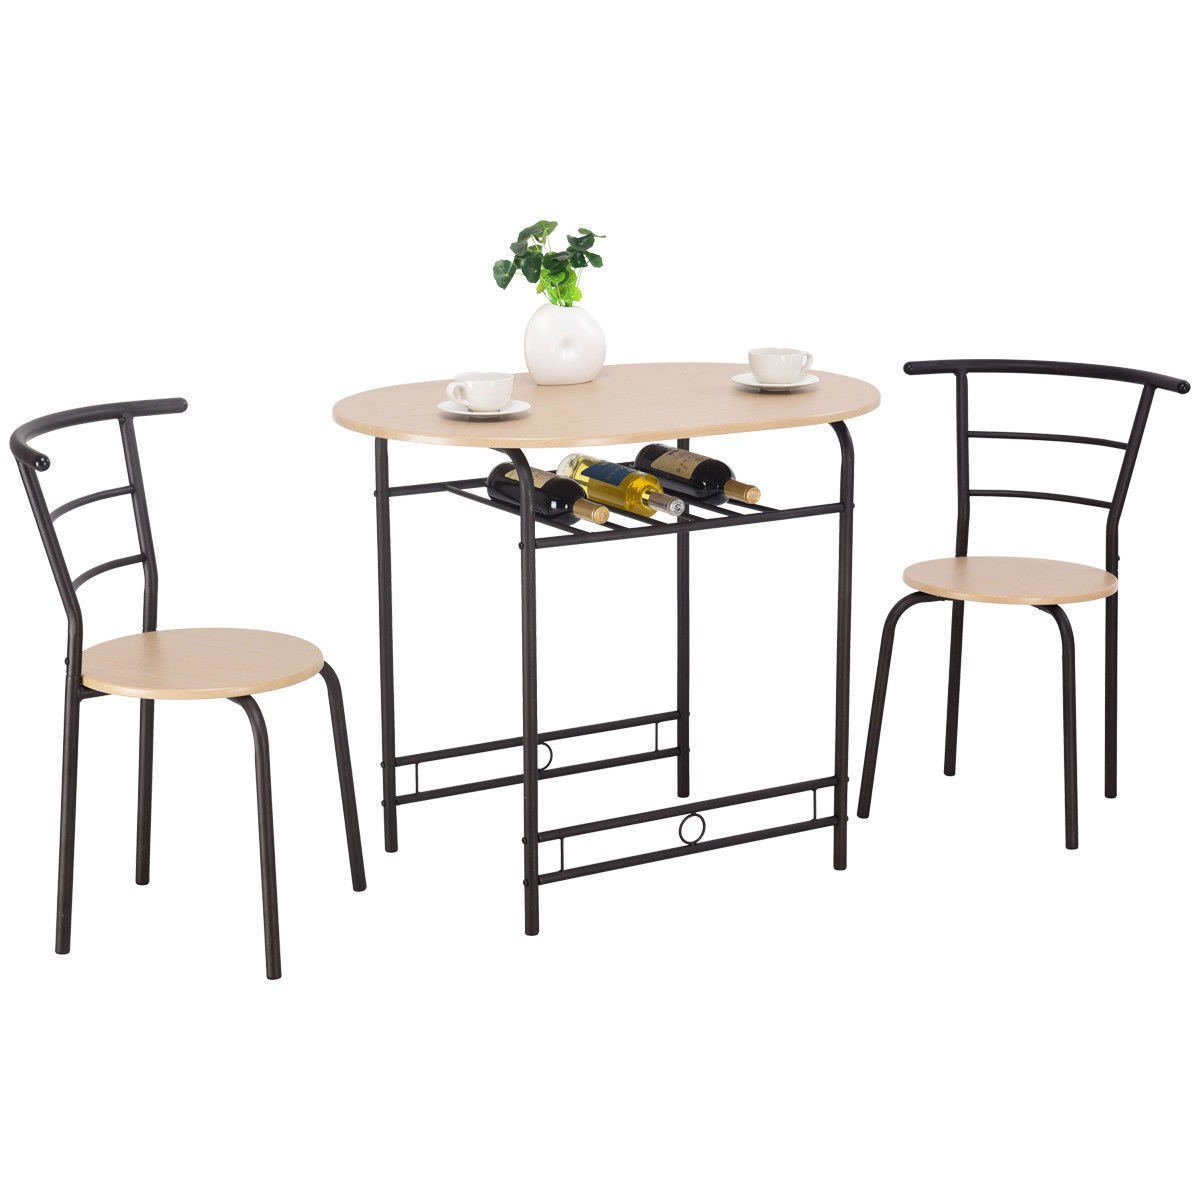 Giantex 3 PCS Dining Table Set w/ 1 Table and 2 Chairs Home Restaurant Breakfast Bistro Pub Kitchen Dining Room Furniture (Natural) by Giantex